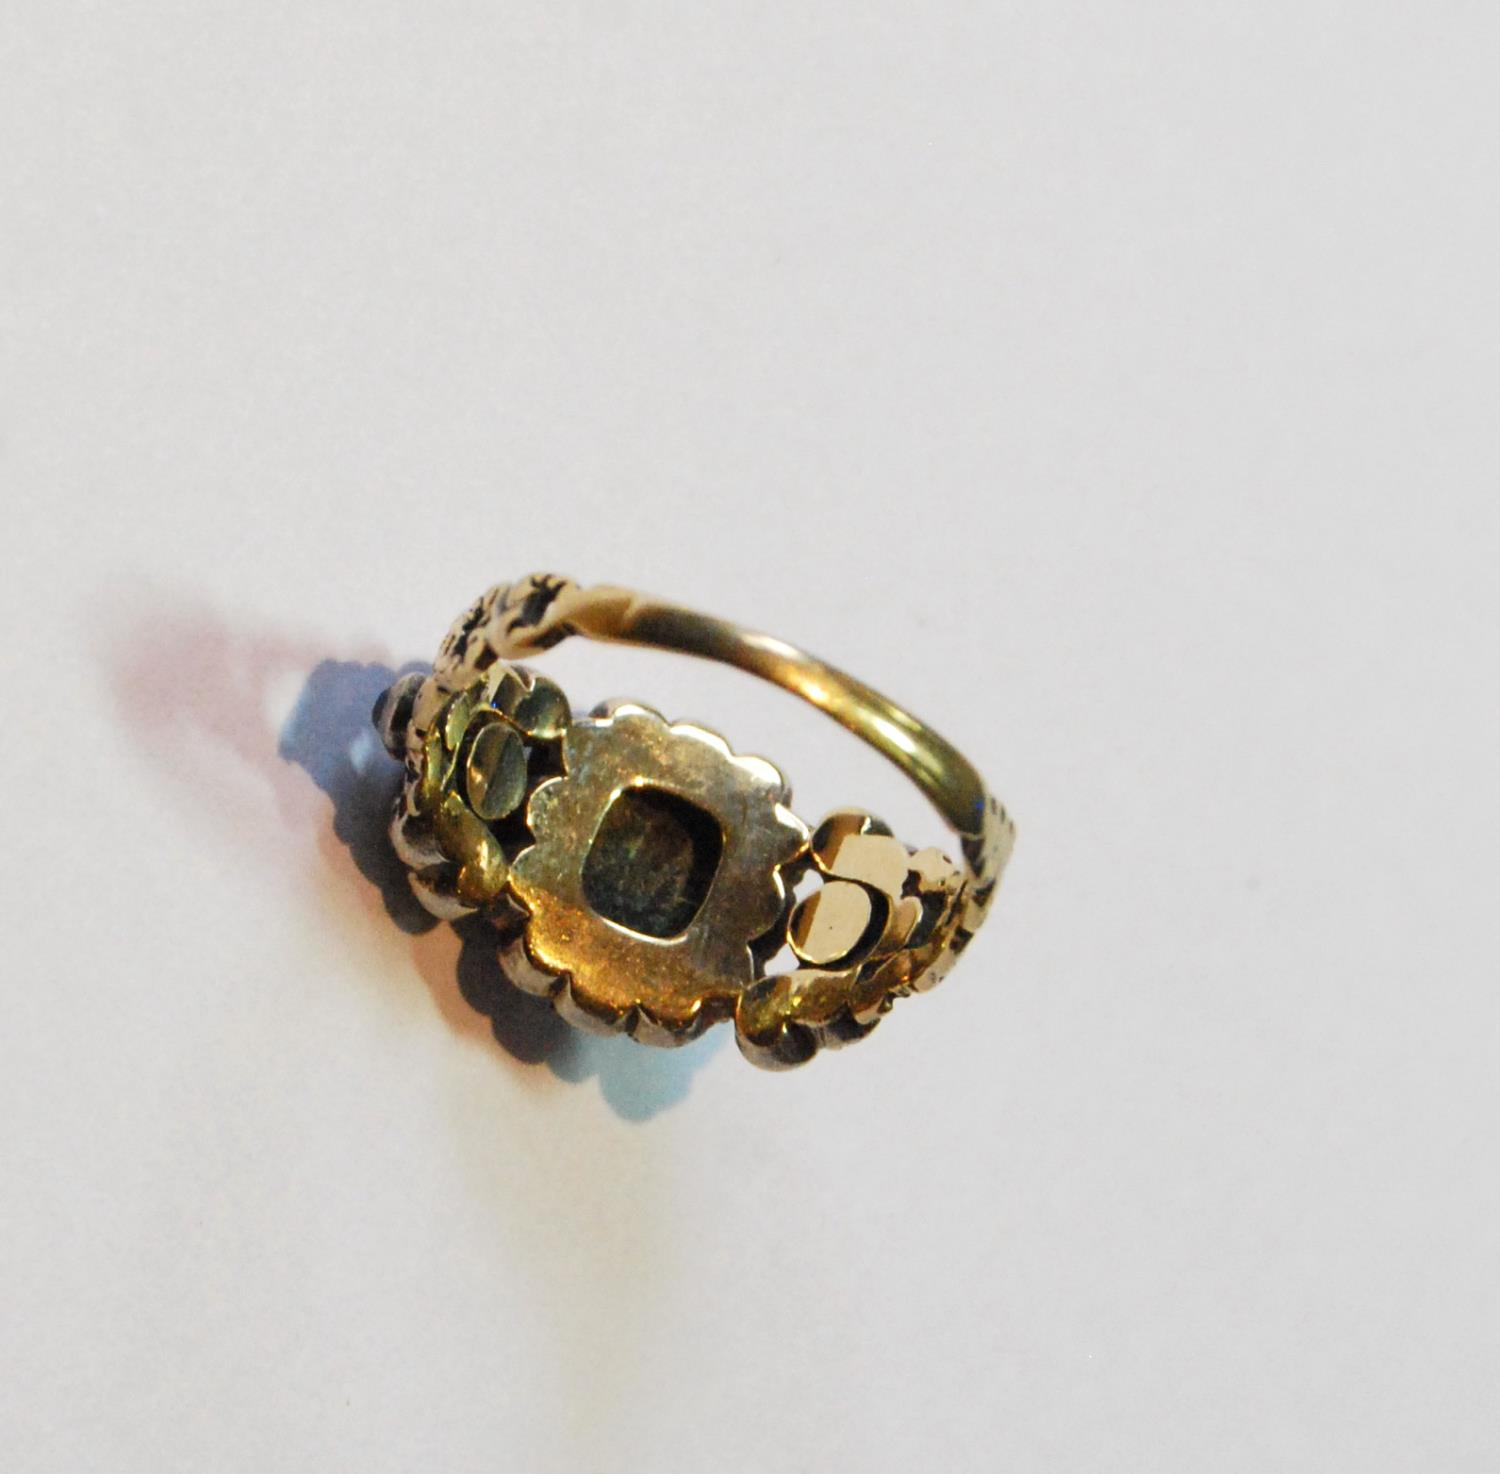 Late Georgian ring with three emeralds and old-cut diamonds, size M½. - Image 3 of 3